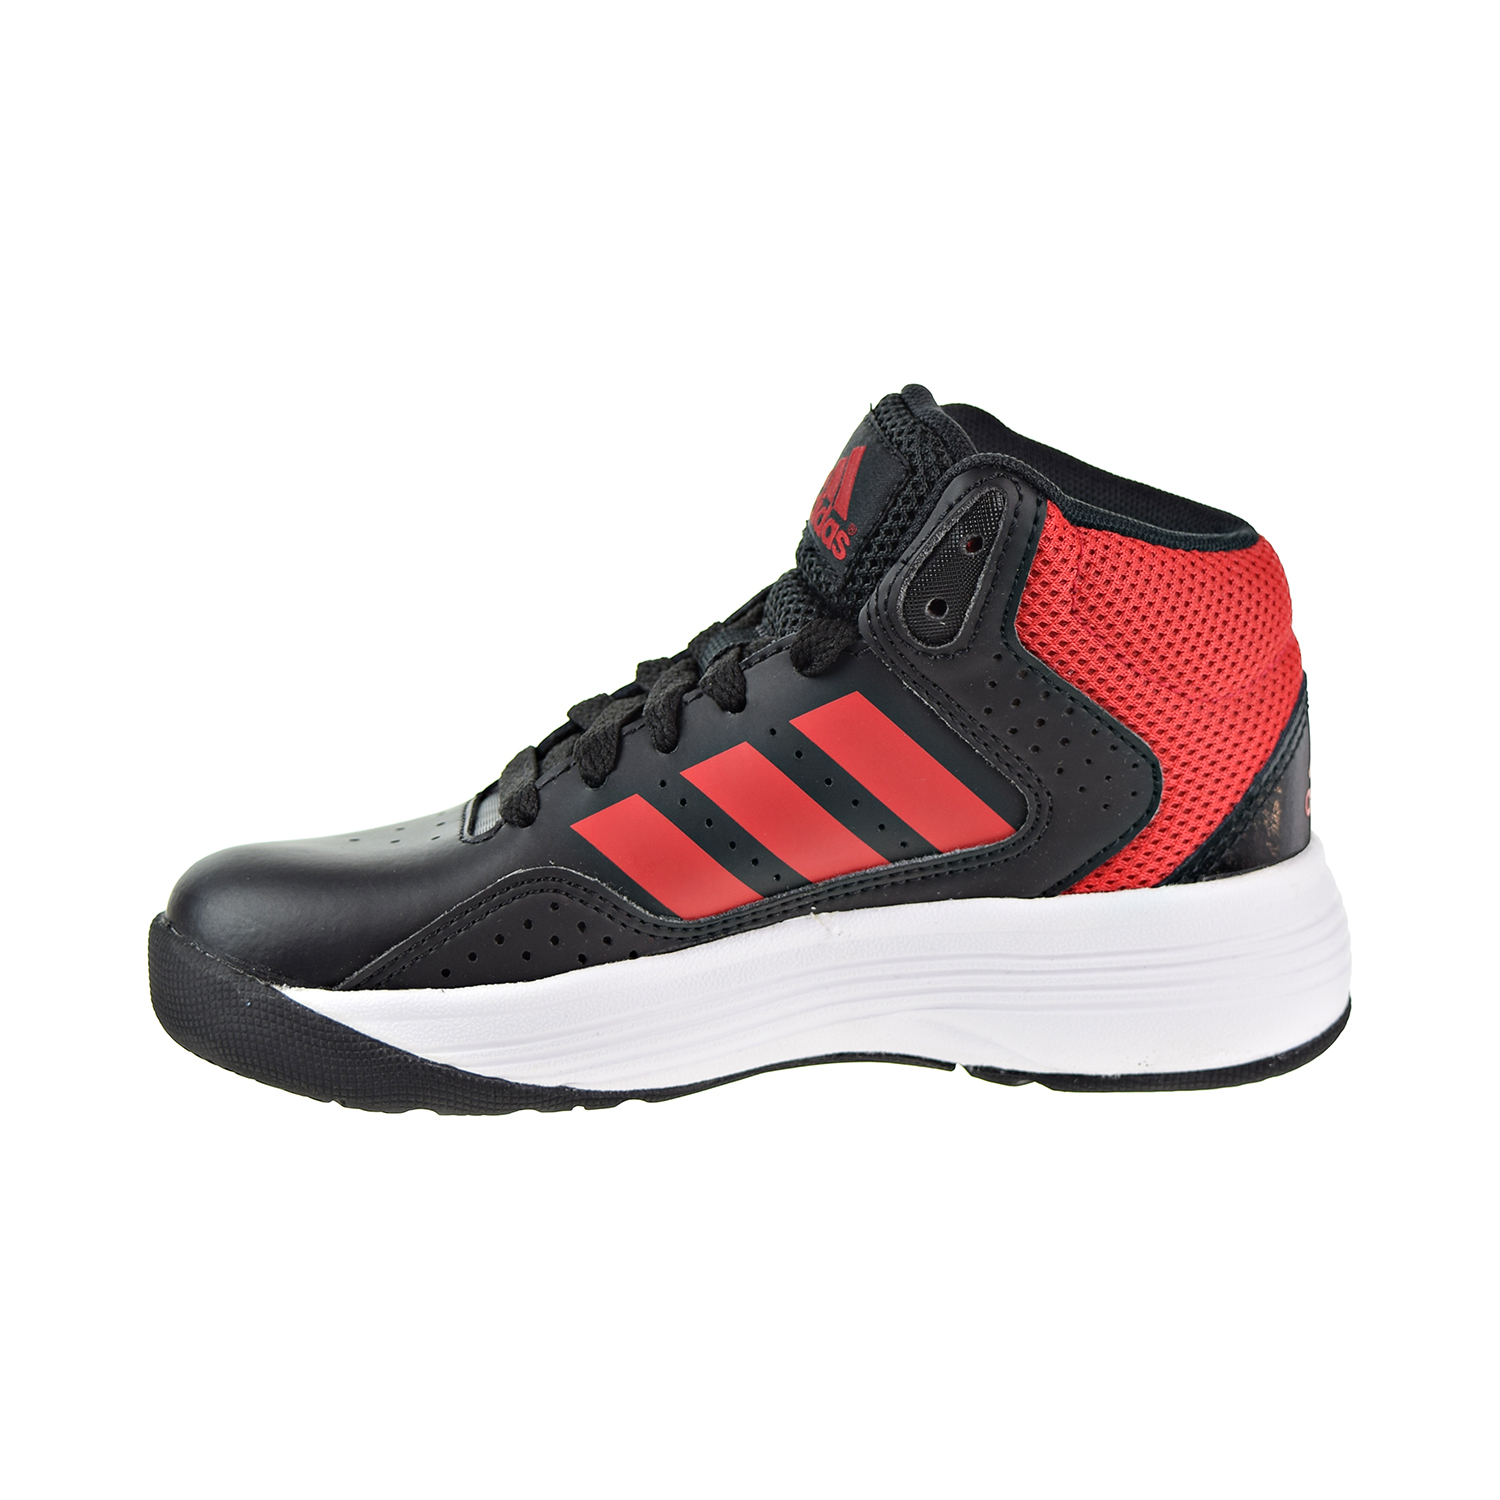 Adidas Cloudfoam Ilation Mid K Big Kids Little Kids Shoes Black Red White  bb9964 9d9744798